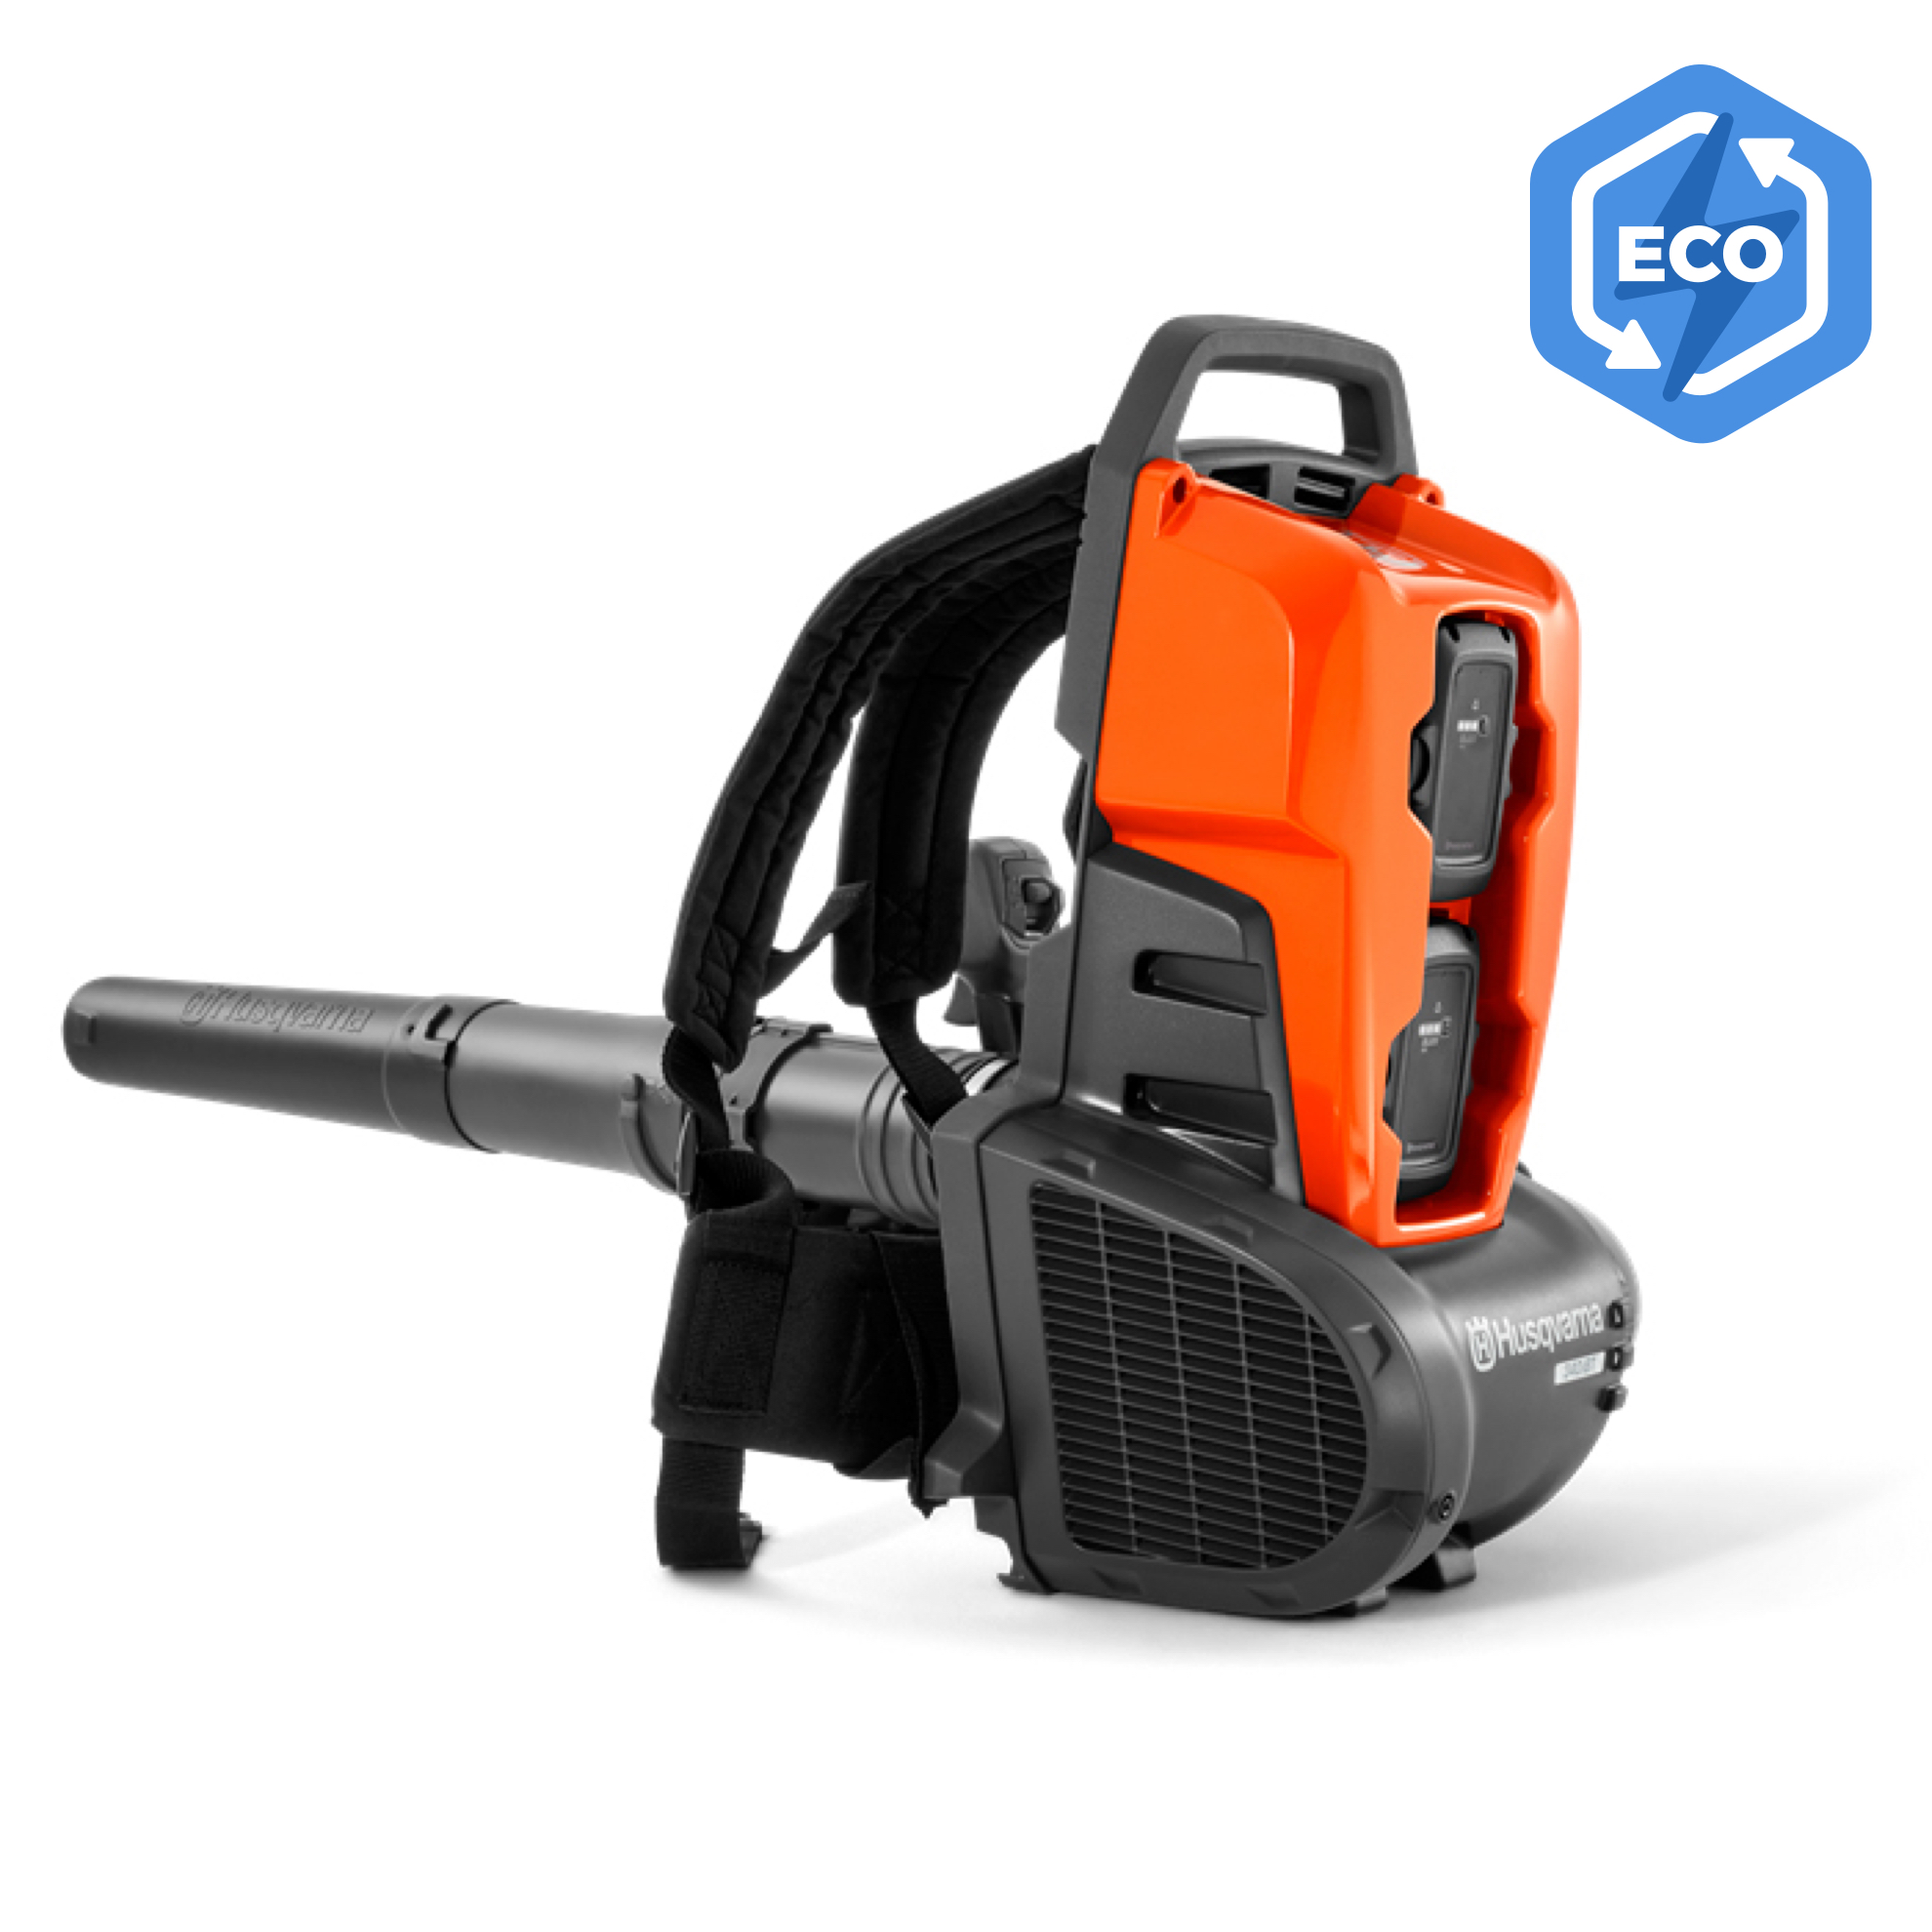 Husqvarna 340iBT Battery-powered Blower